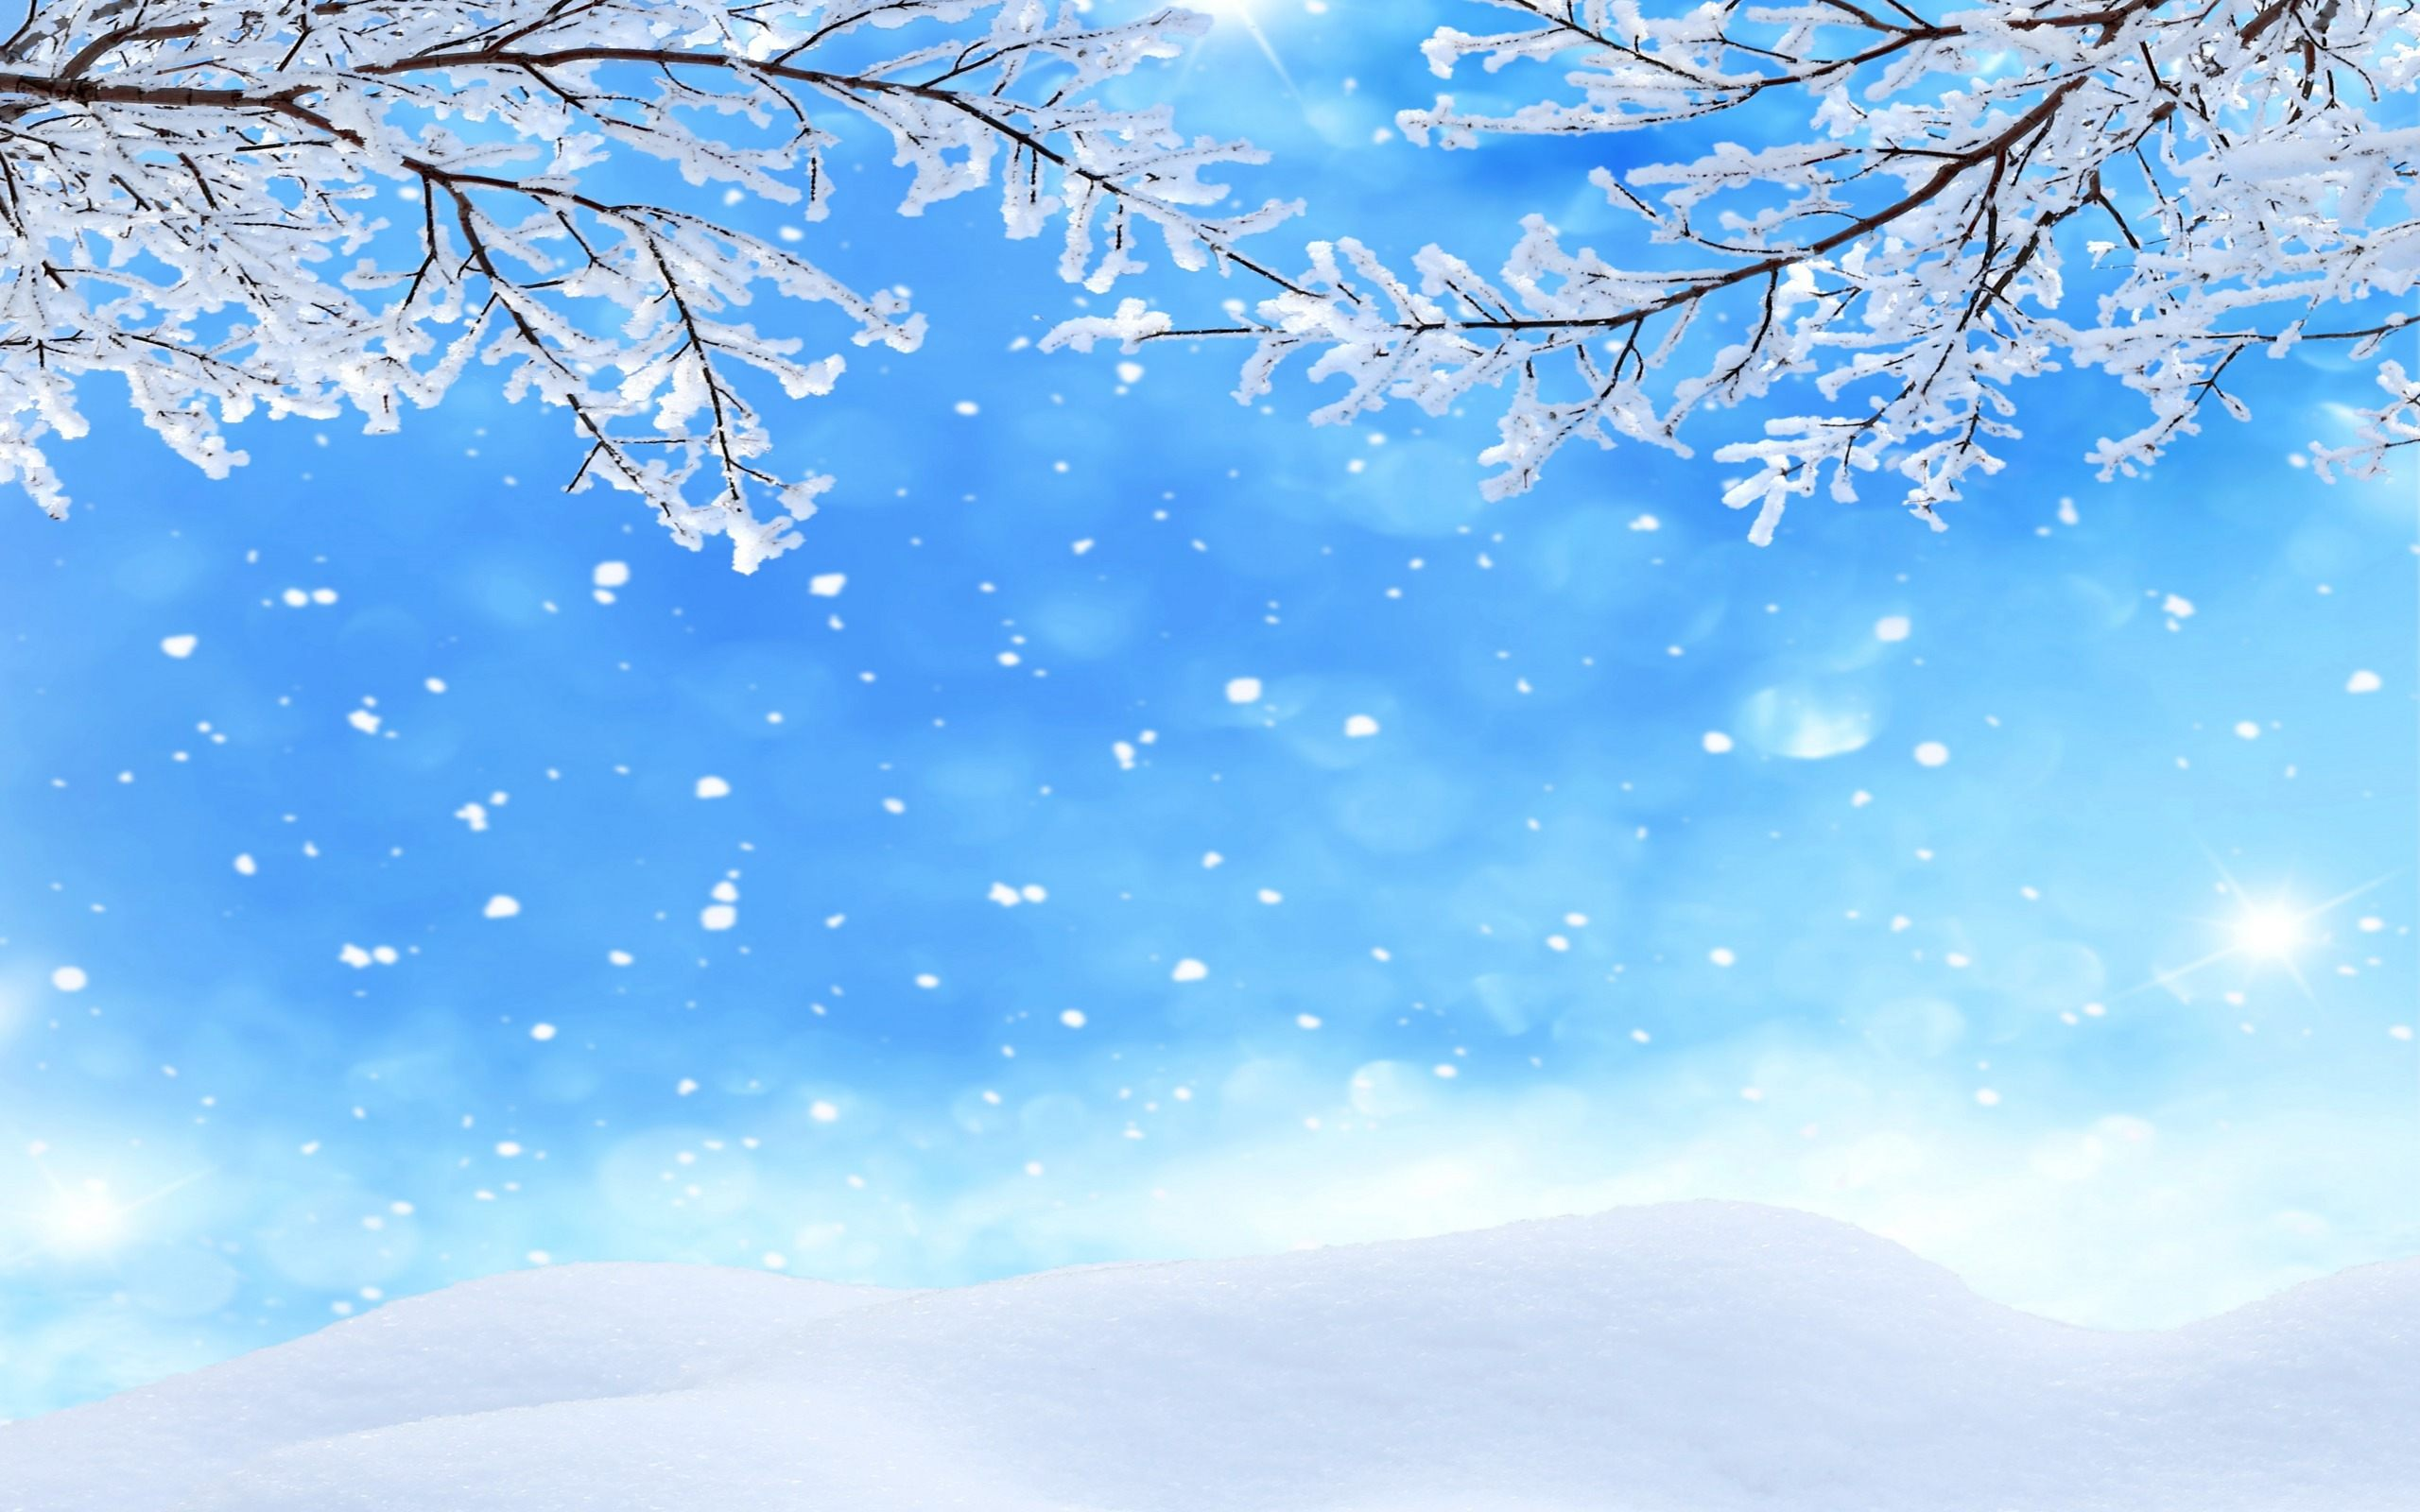 Winter Background Snowflakes Wallpaper HD Free Download